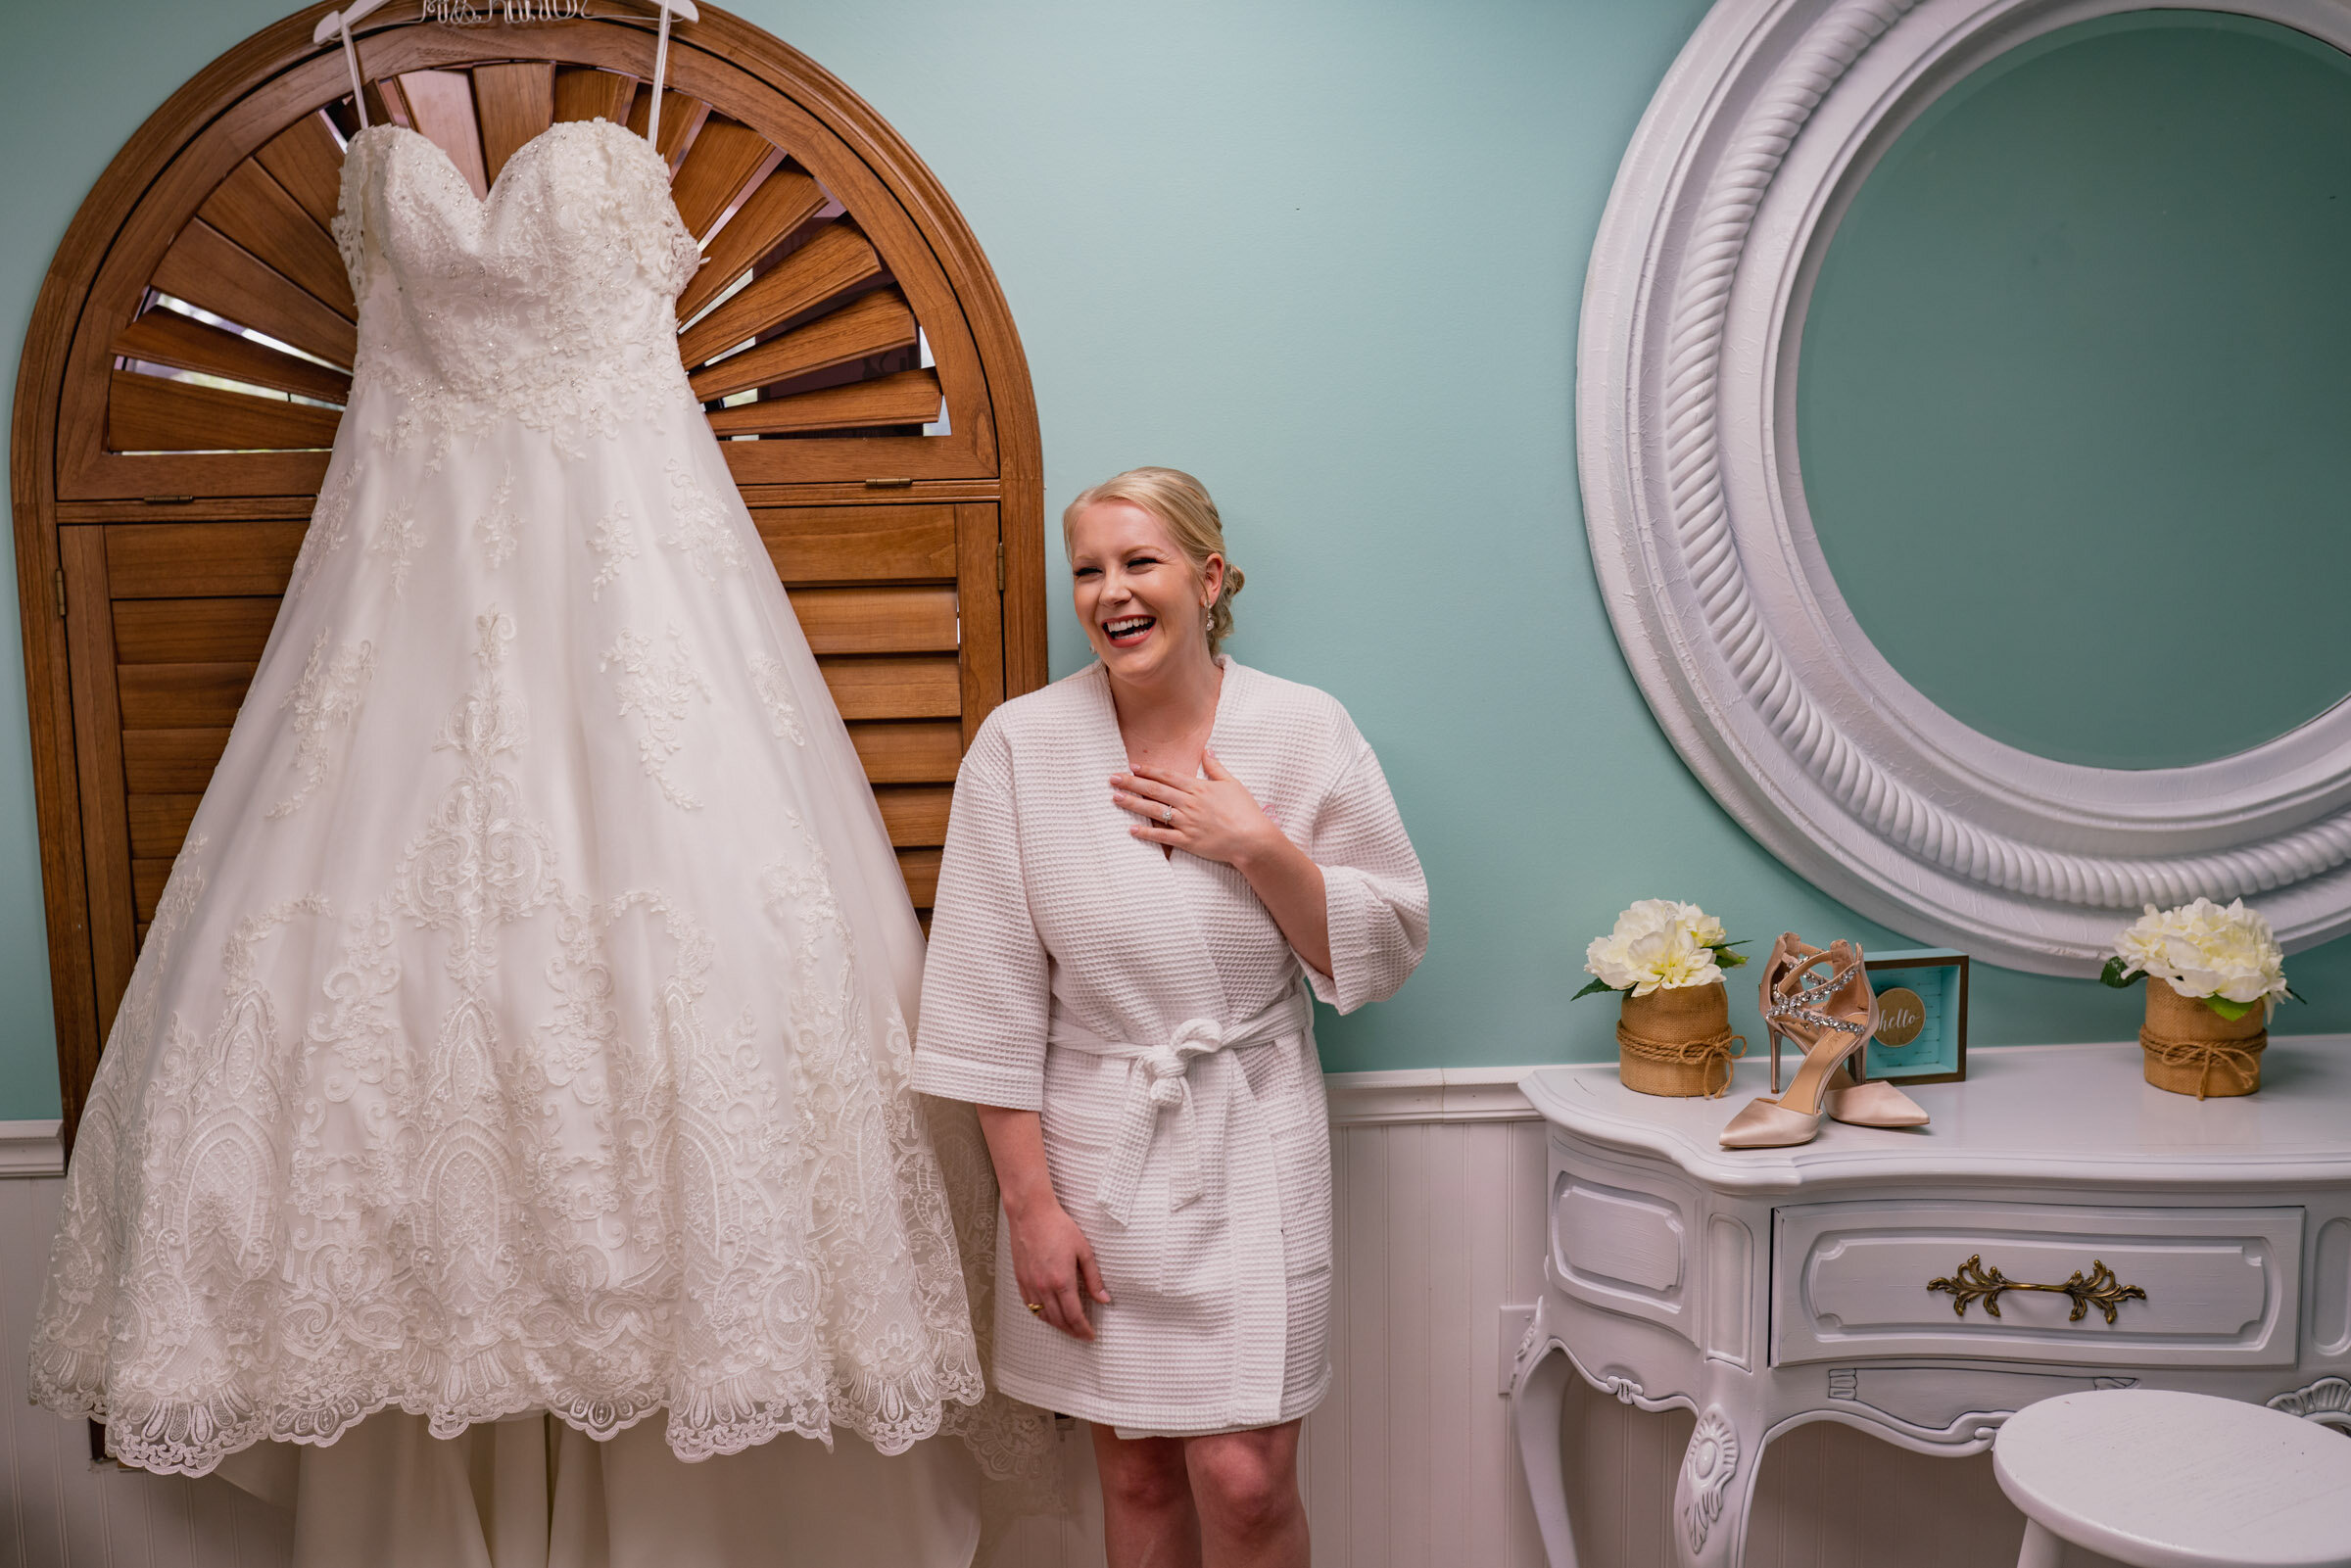 Our journalistic wedding photography matched Jessica's authentic and in-the-moment style